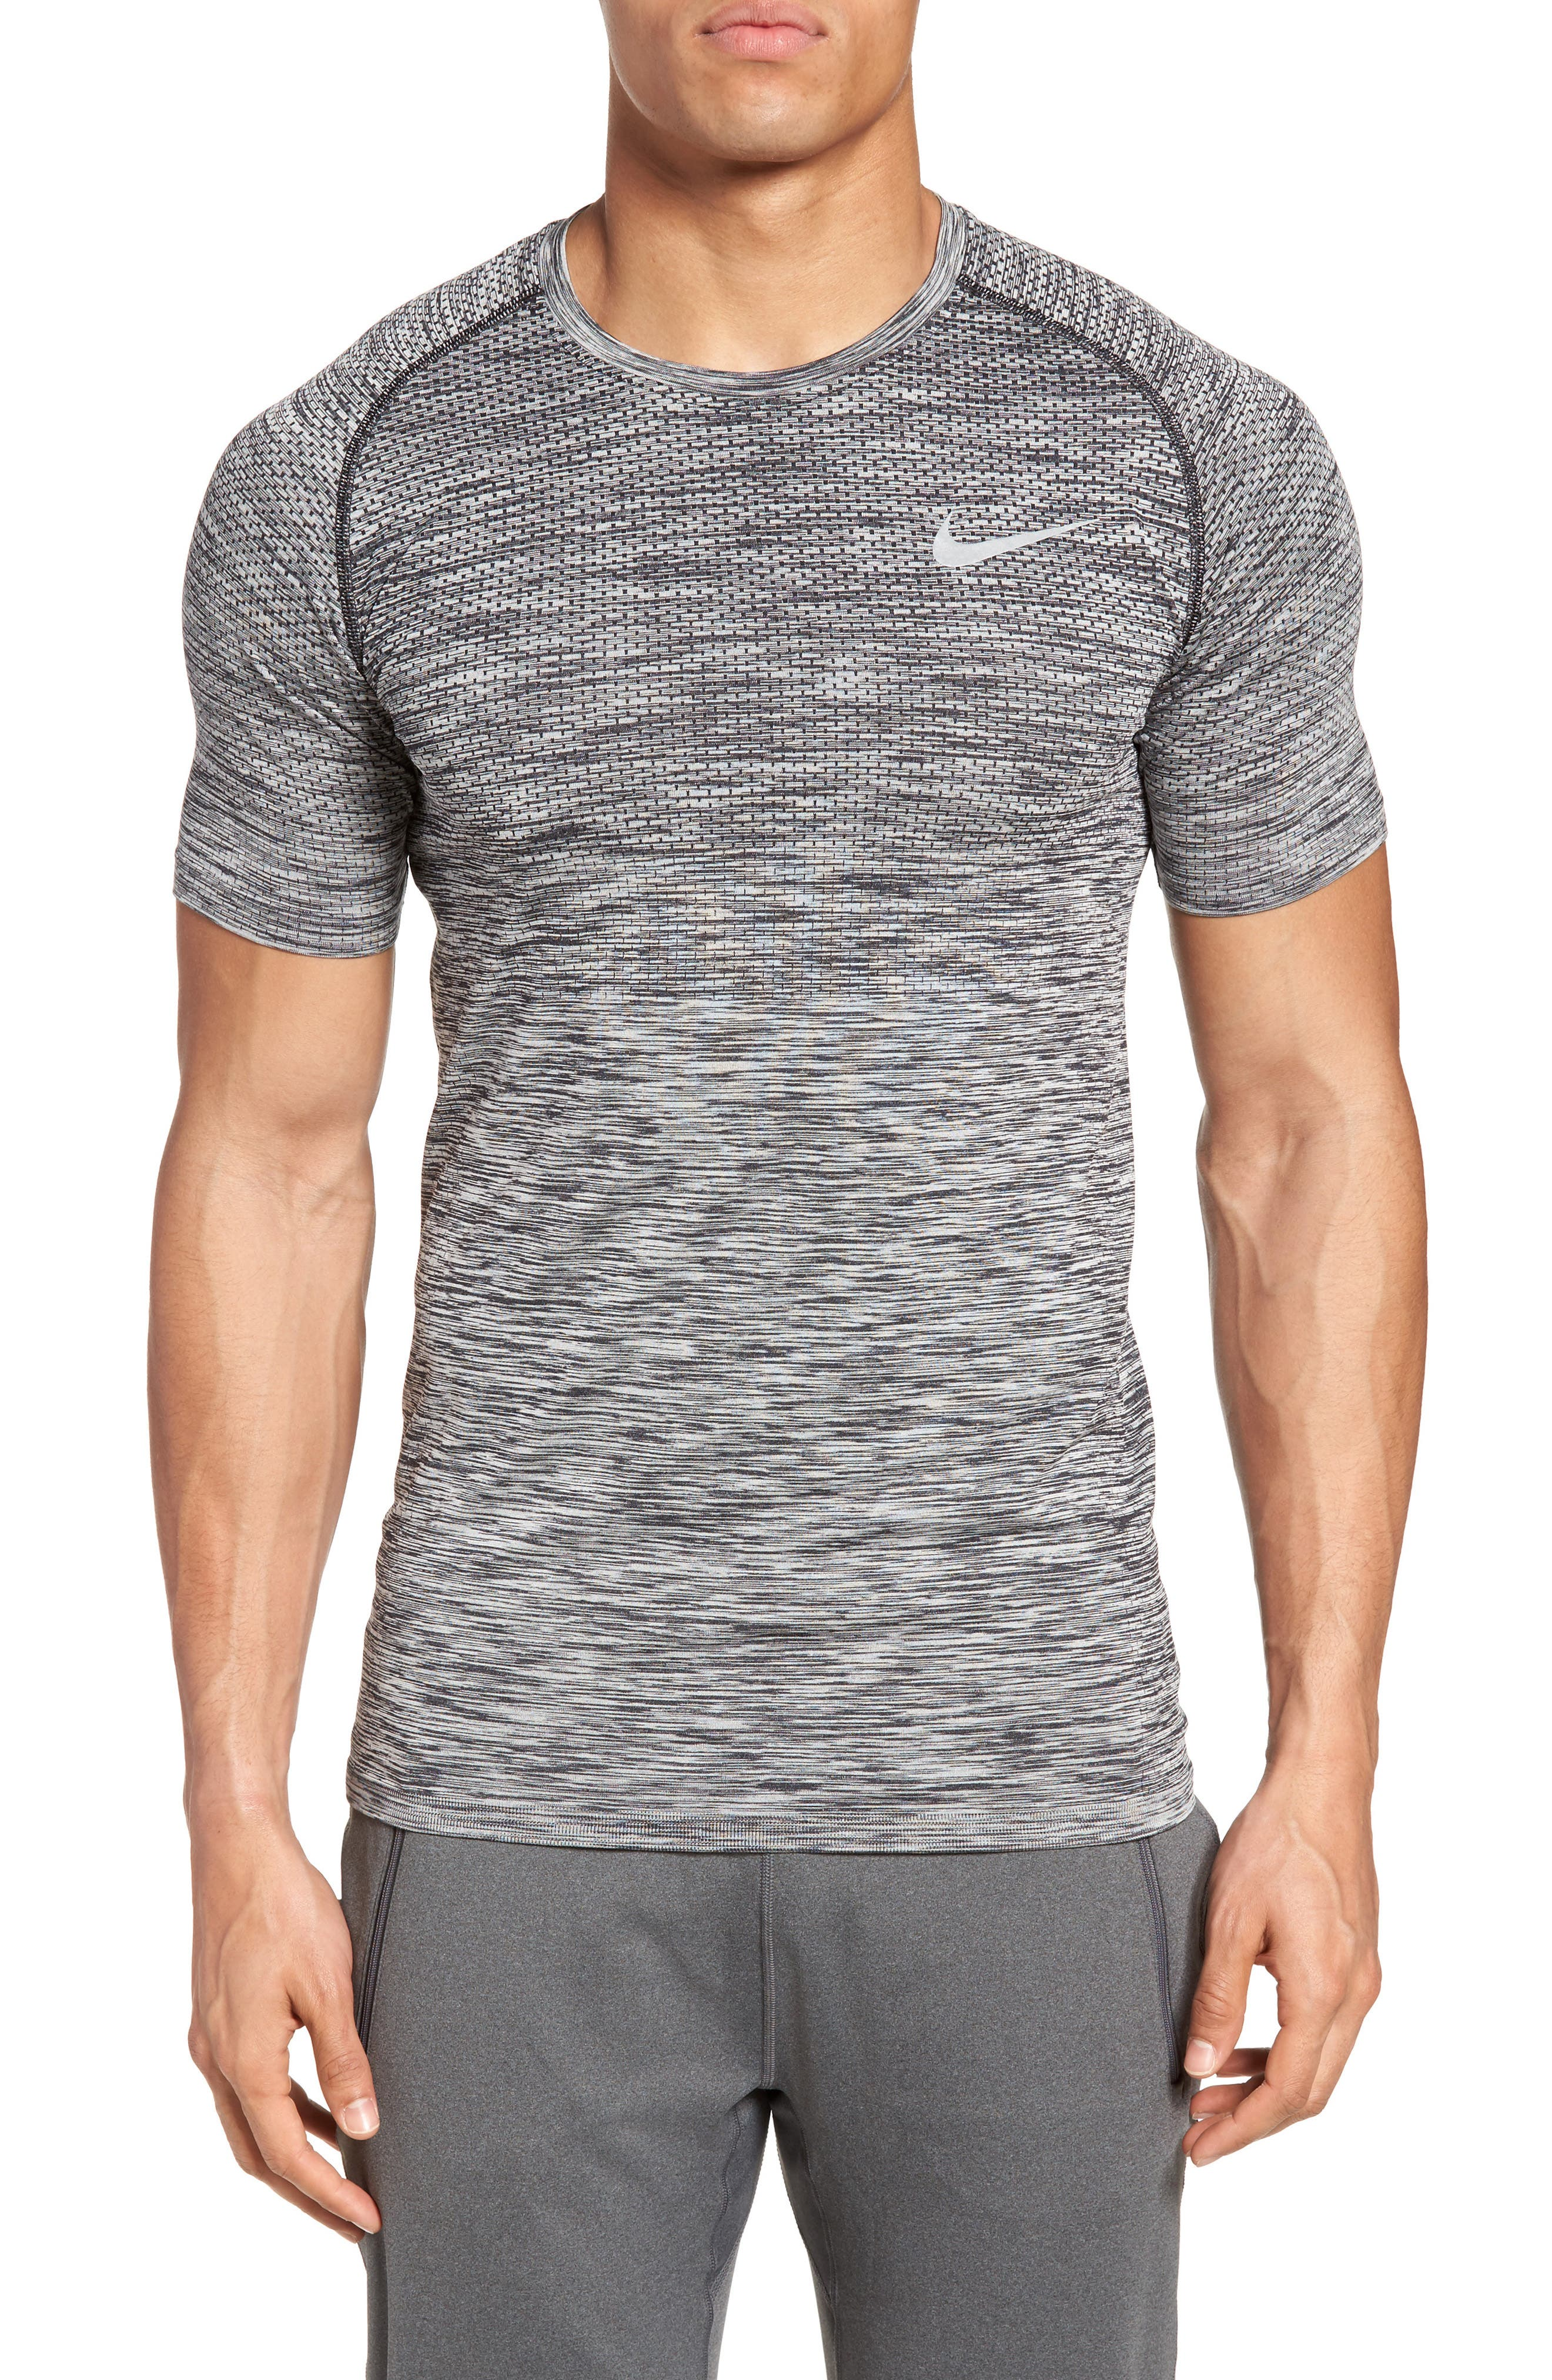 NIKE Men Dry Knit Running T-Shirt